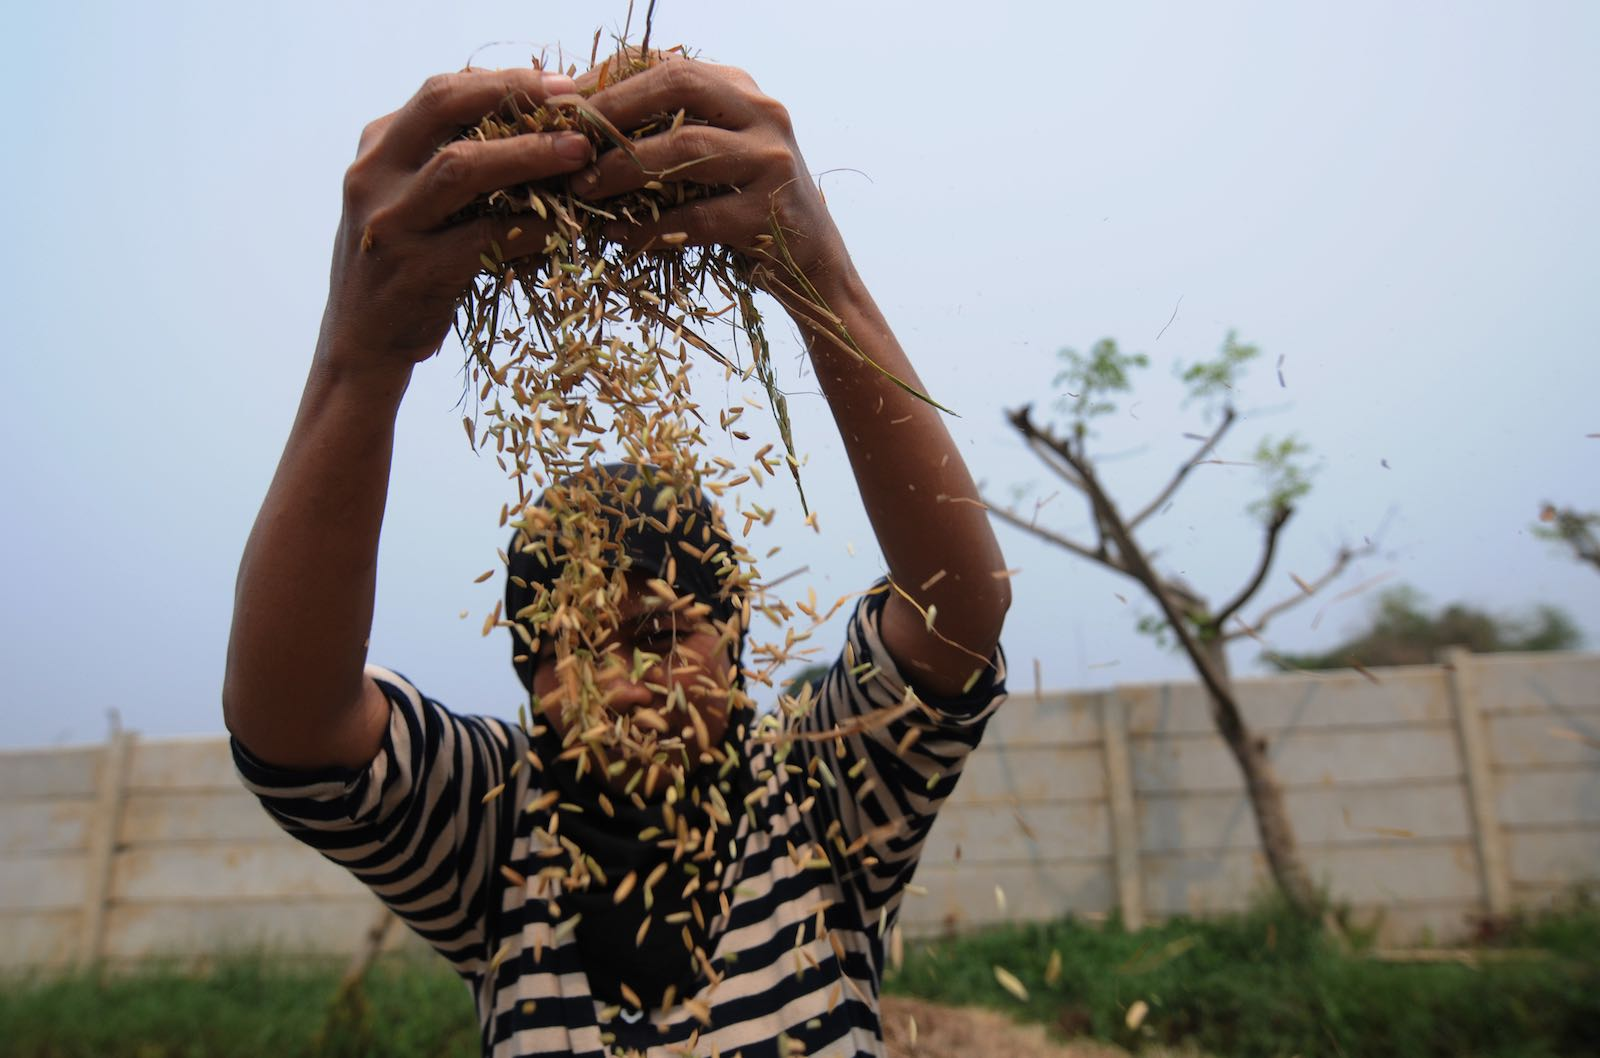 Harvesting rice in Tangerang, Indonesia, where rice is still imported (Photo: Riau Images via Getty)